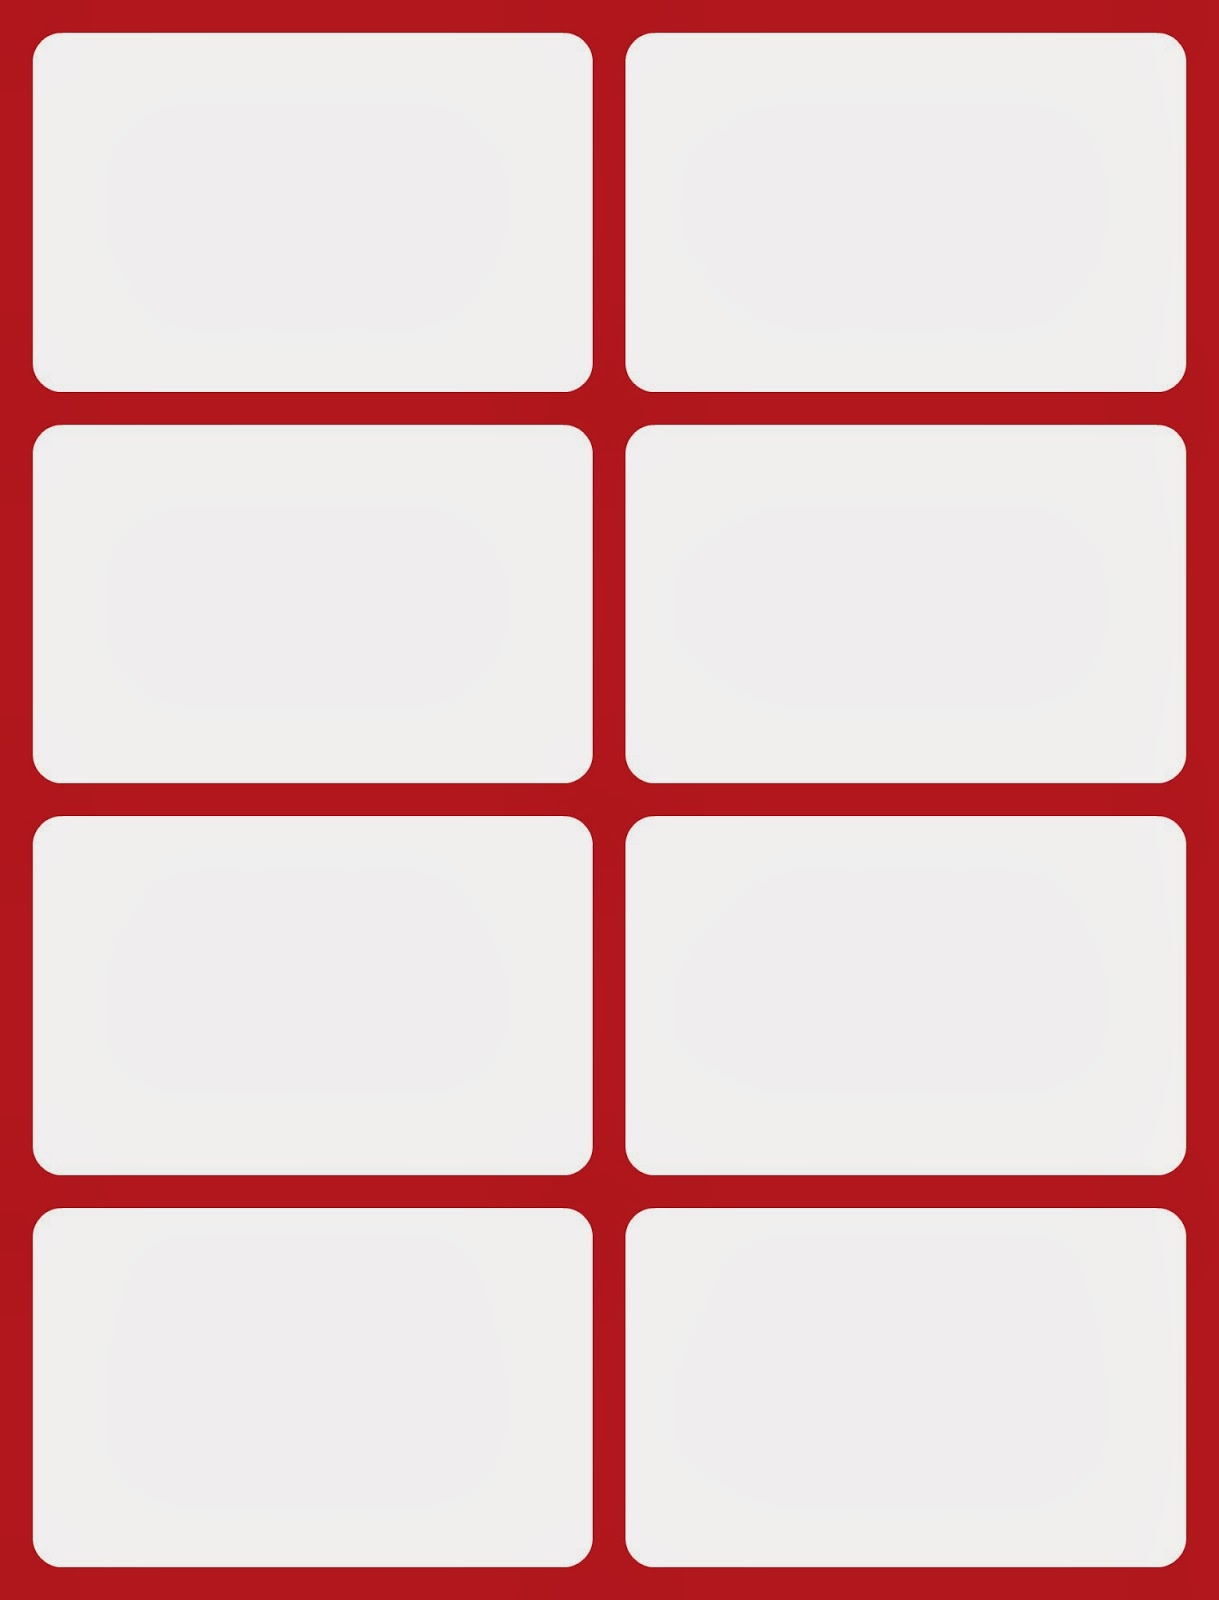 punch card template microsoft word